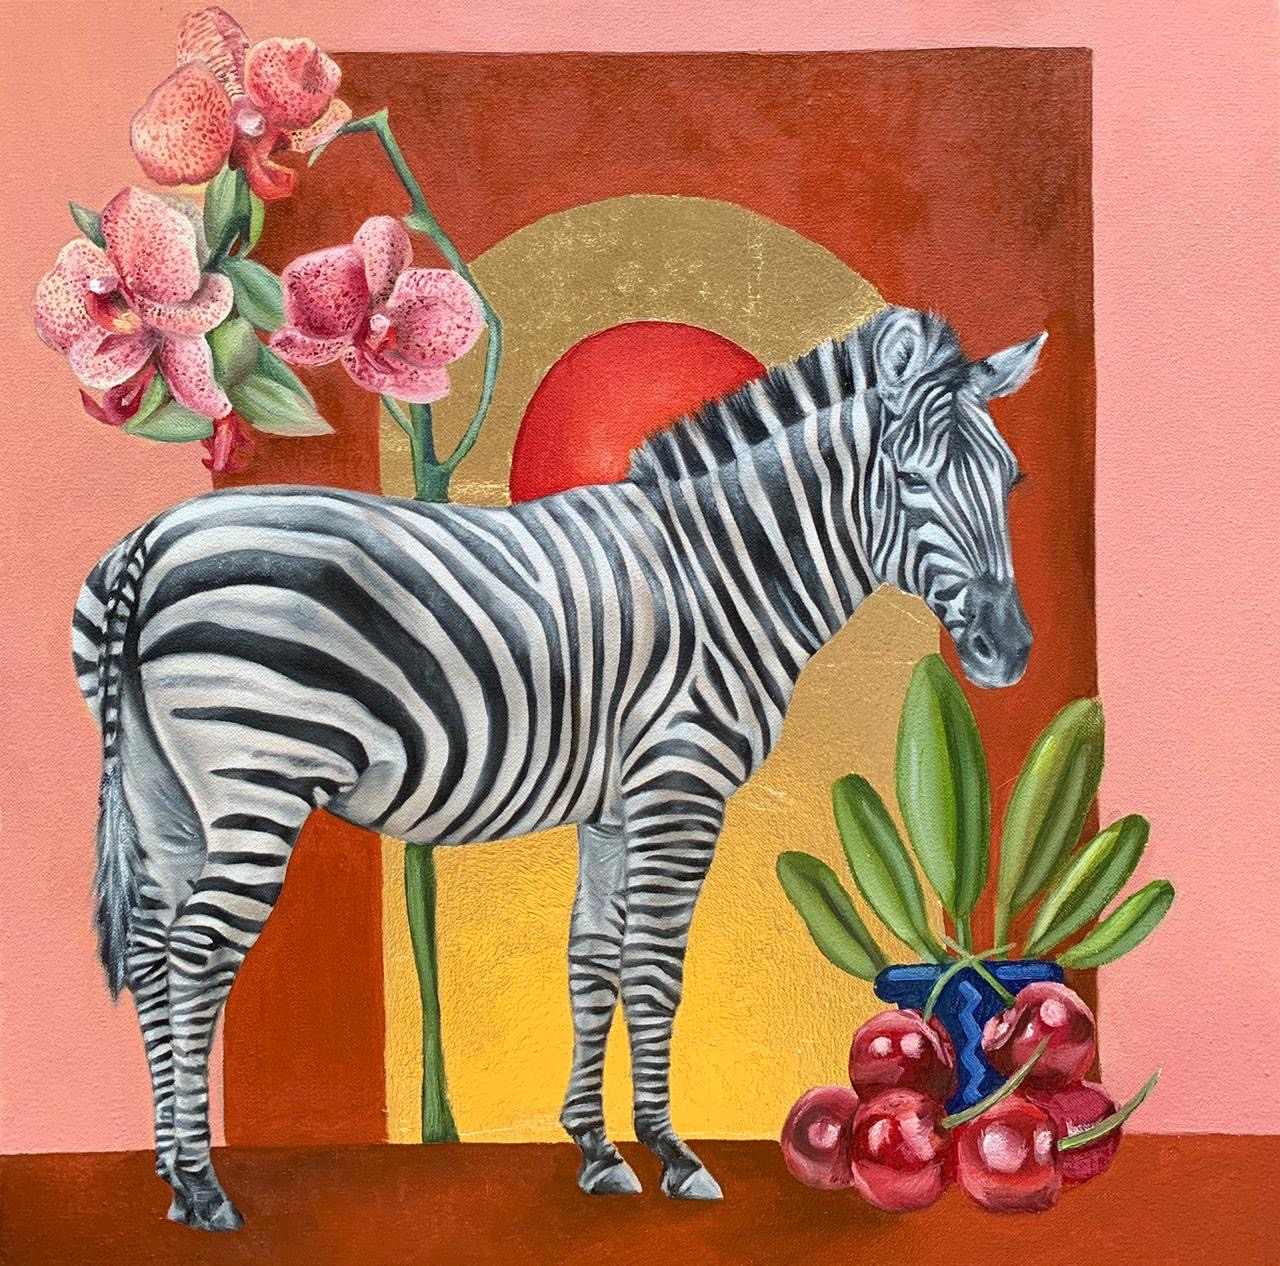 """Tanya Shah<br></br>""""Still Life""""<br></br>Oils and Gold Leaf on Canvas<br></br>18x18 inches"""